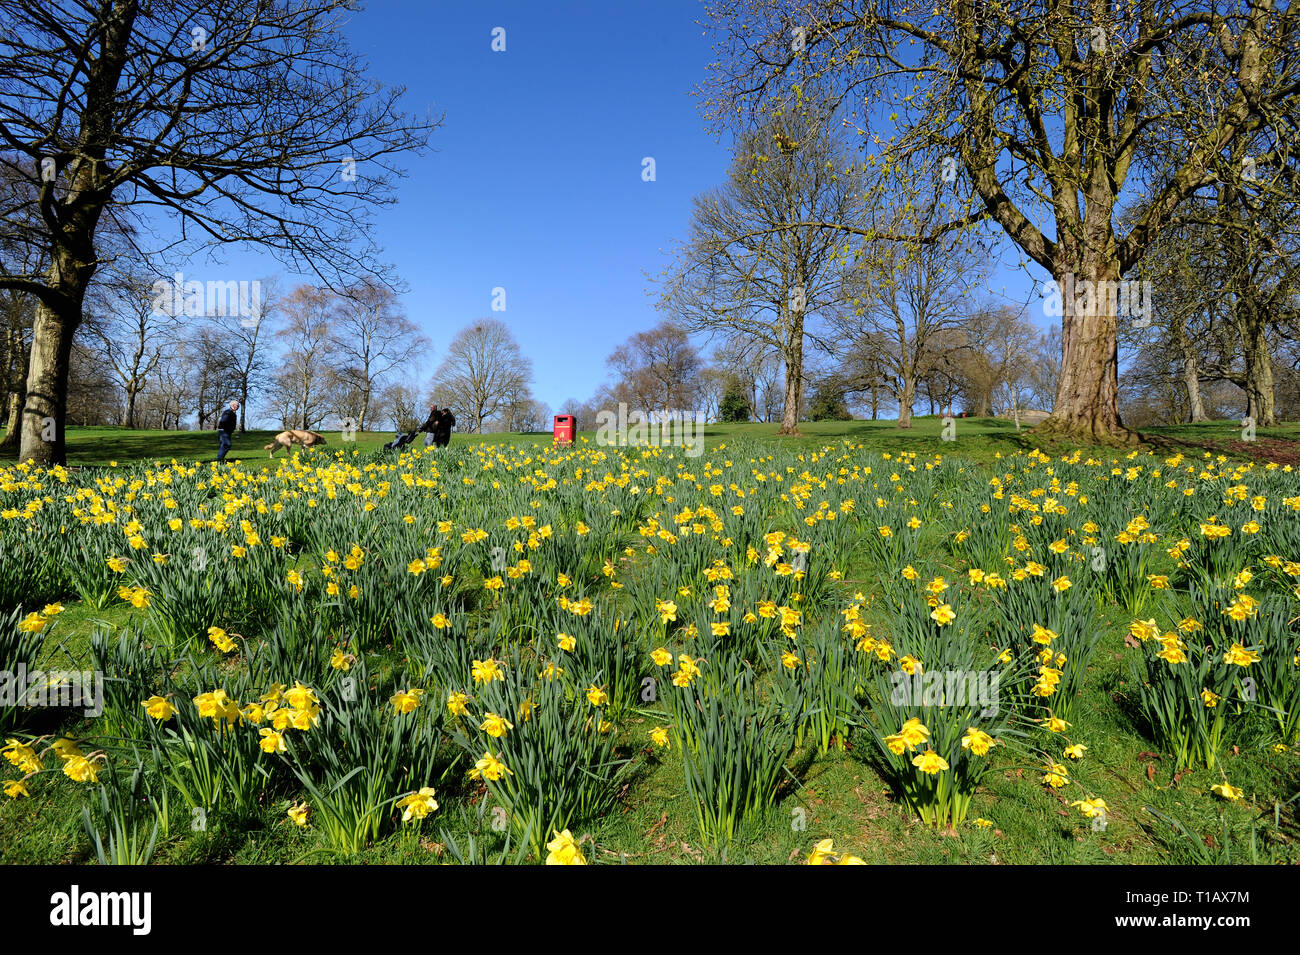 Bolton, Lancashire, UK. 25th March, 2019. Glorious Spring sunshine in Queen's Park, Bolton, Lancashire. A perfect start to the week as blue skies and warm sunshine are expected to continue until the weekend in the North West of England. Walkers pass by the golden crop of daffodils in the park under blue skies. Picture by Credit: Paul Heyes/Alamy Live News Stock Photo